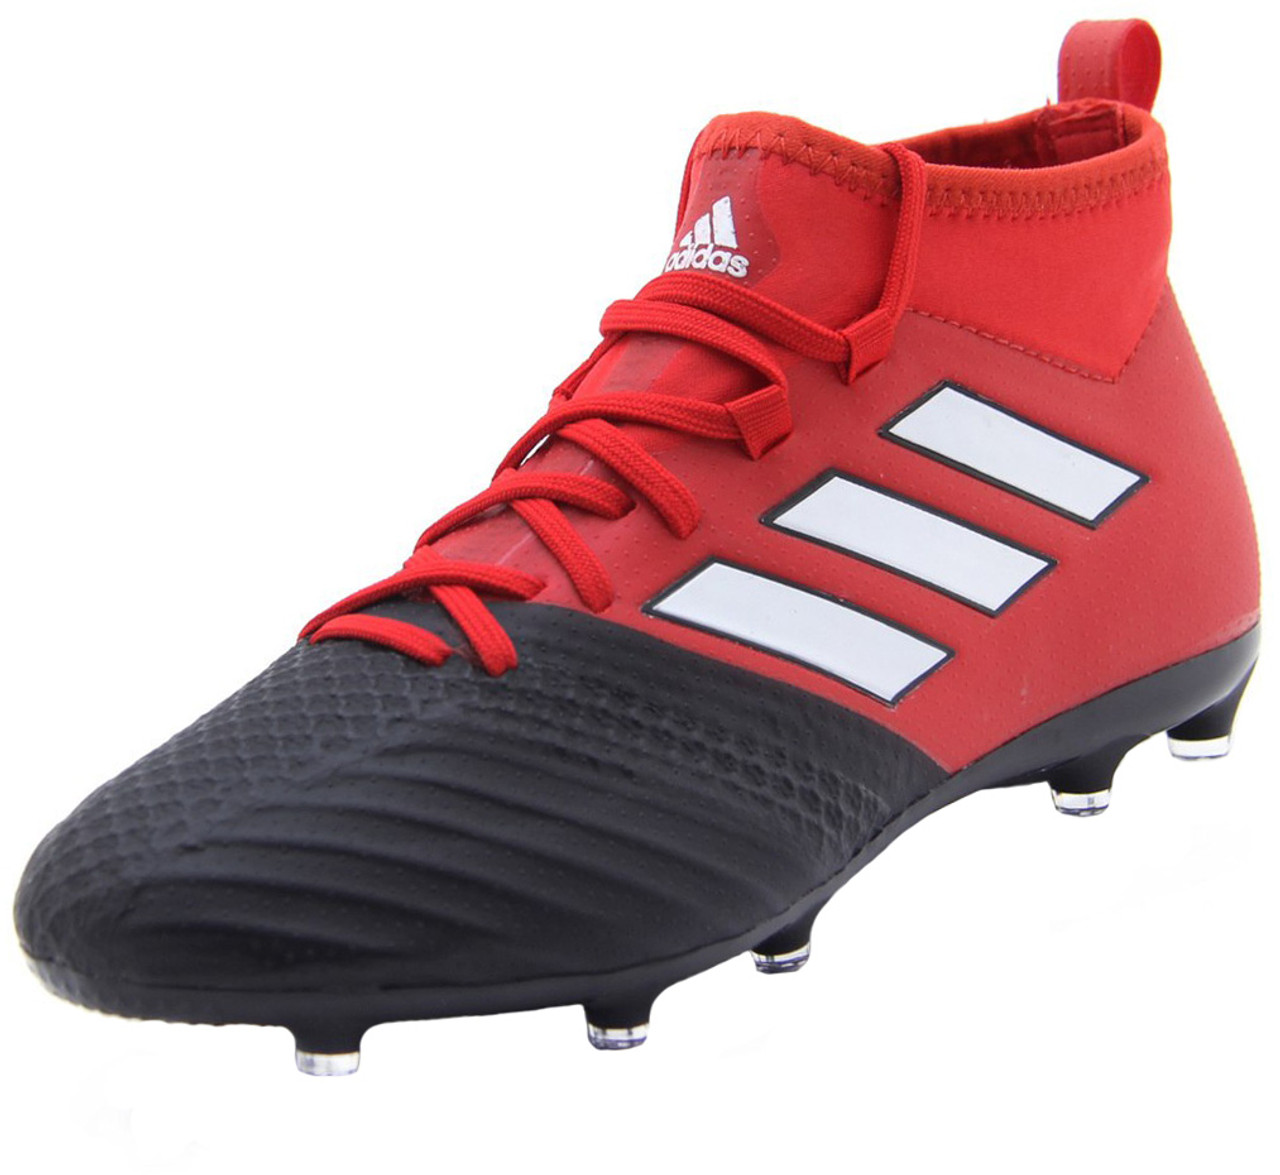 Adidas Ace 17.1 Purecontrol FG Jr - Black Red (0108190) - ohp soccer 6294a6841153